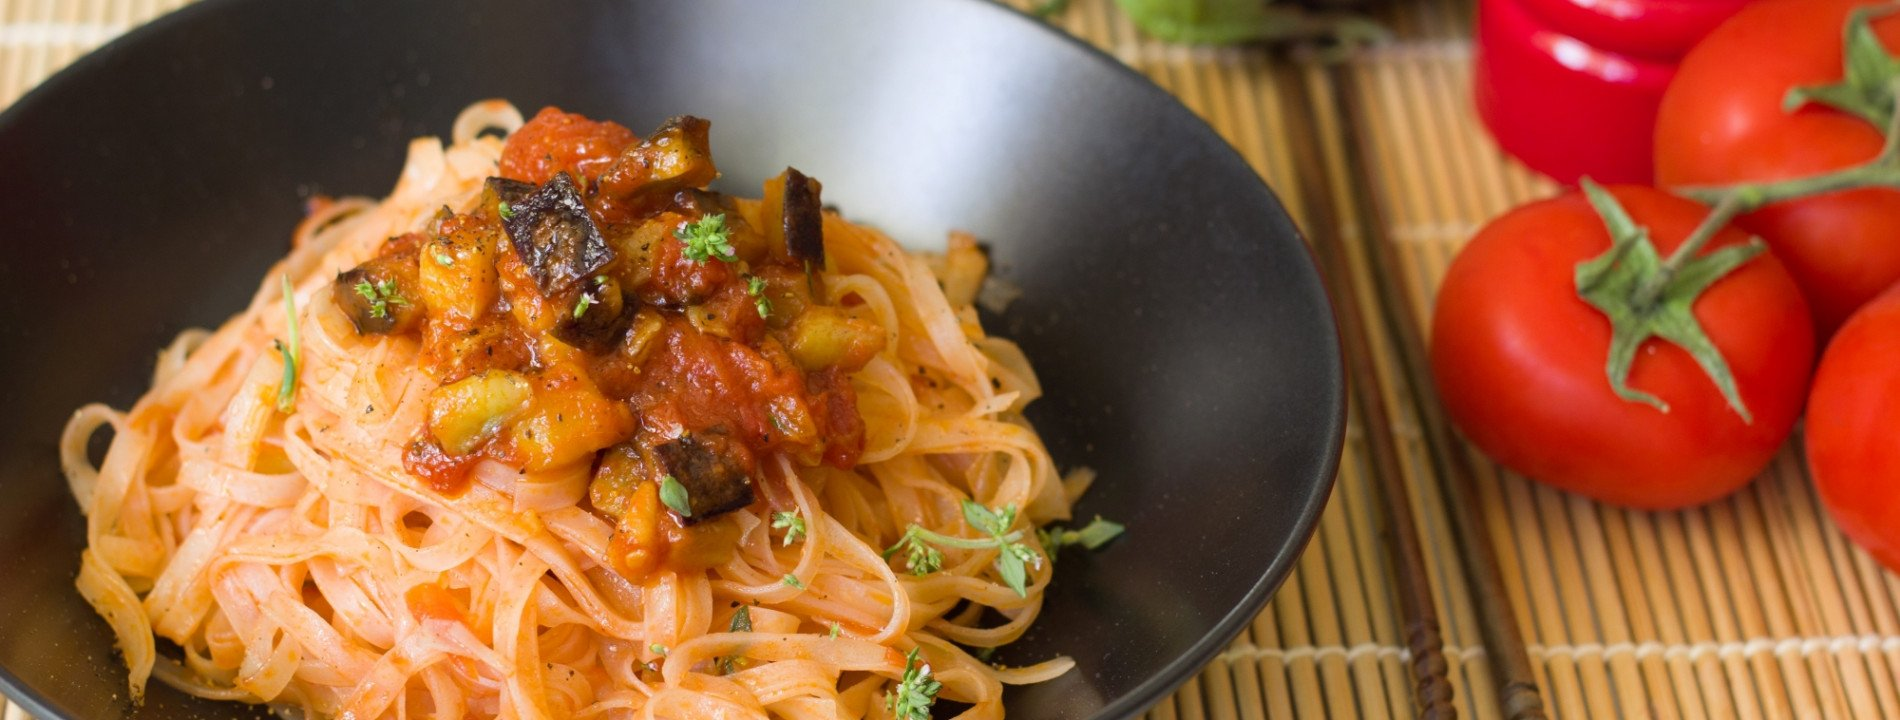 Rice Noodles with Eggplant, Tomato and Thyme